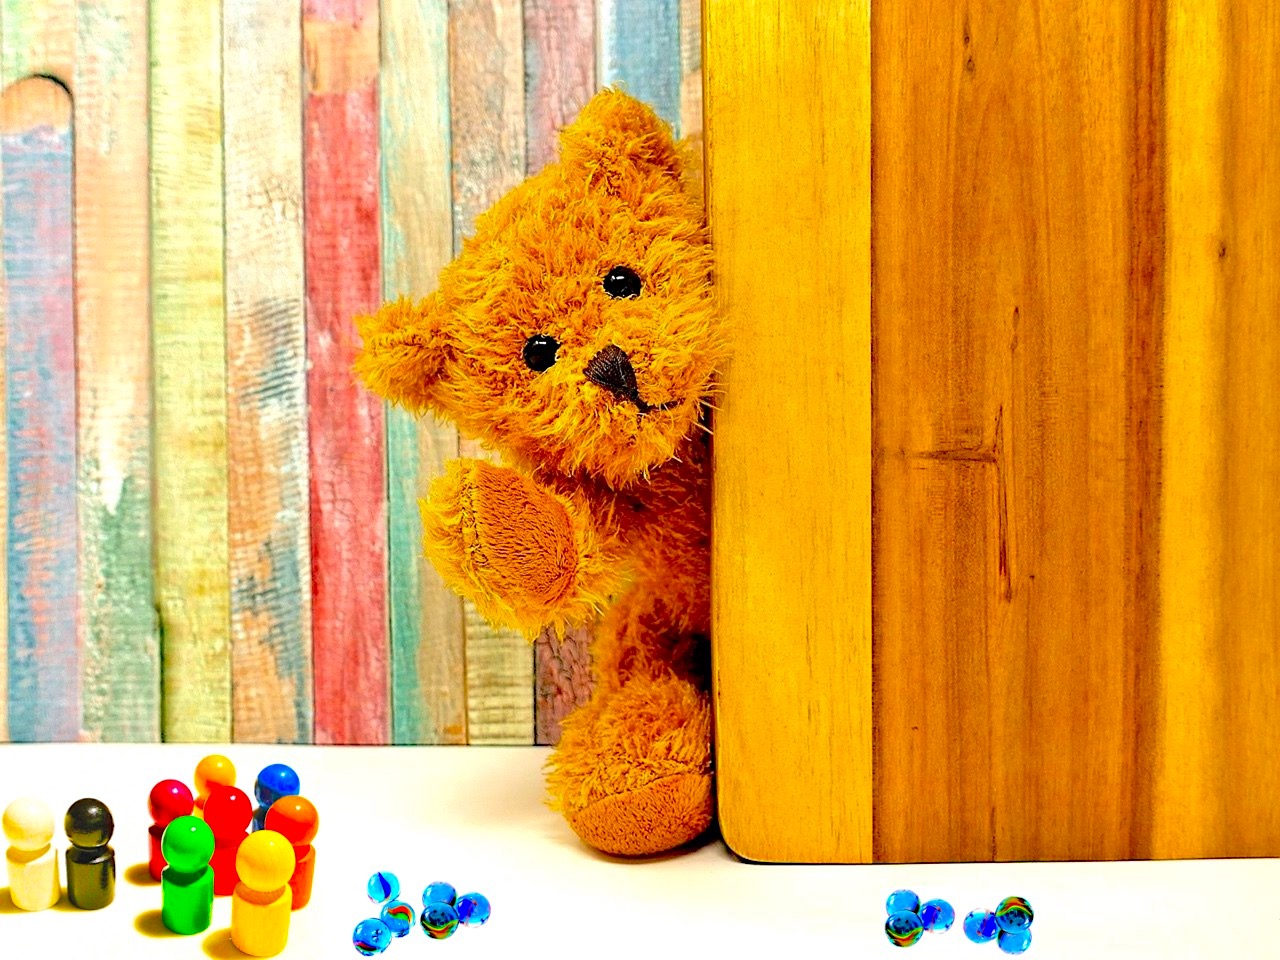 Teddy bear next to some miniature skittles and marbles